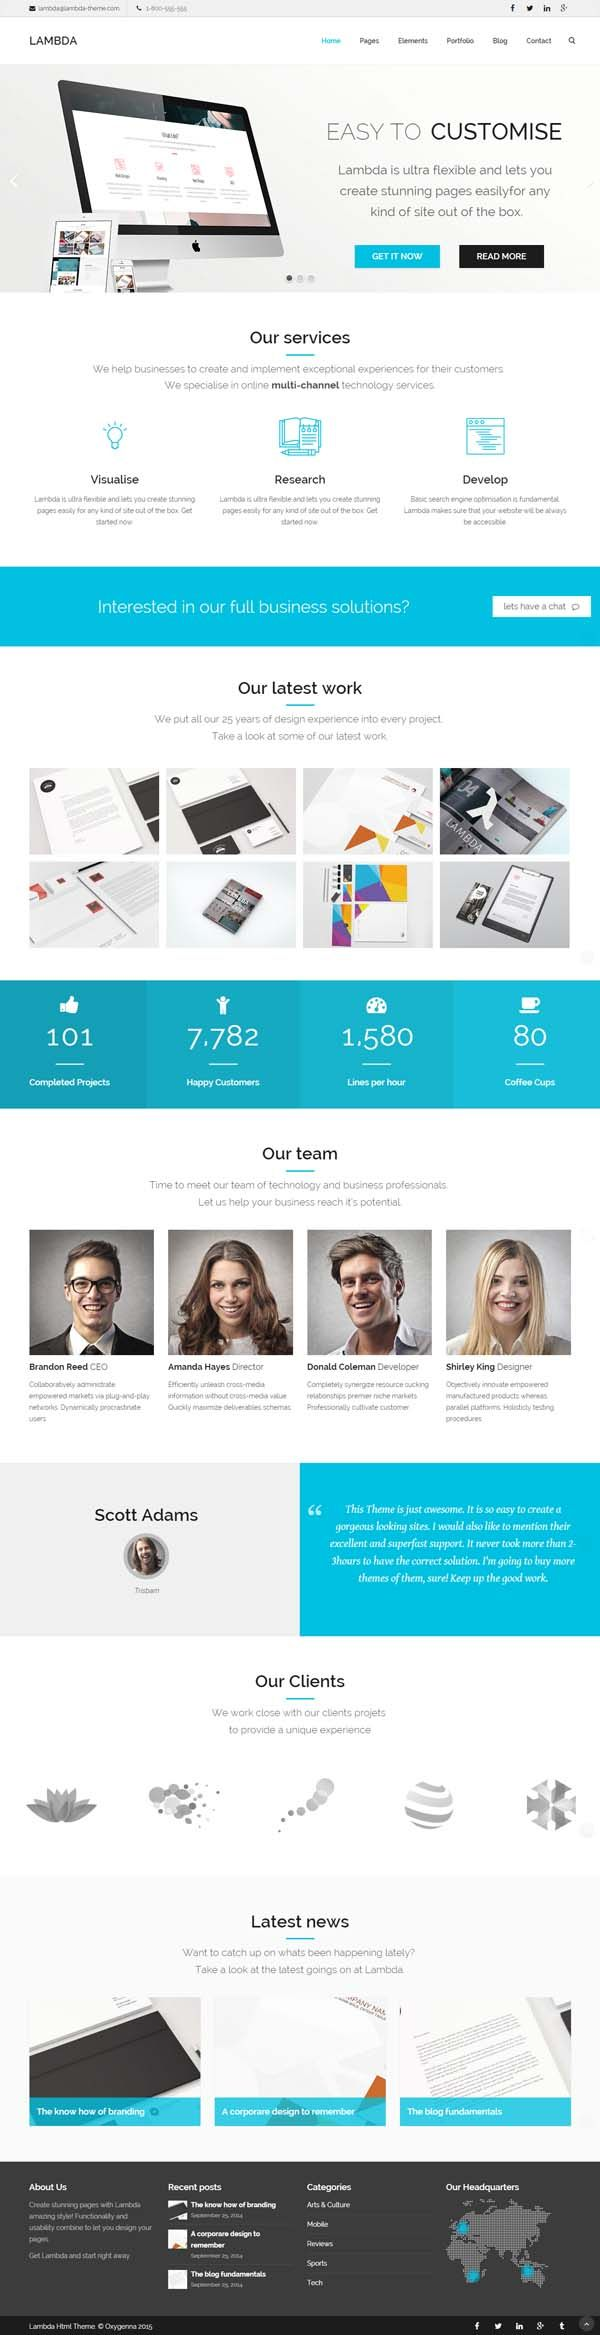 Lambda - Multi Purpose Bootstrap HTML Template #HTML5templates ...